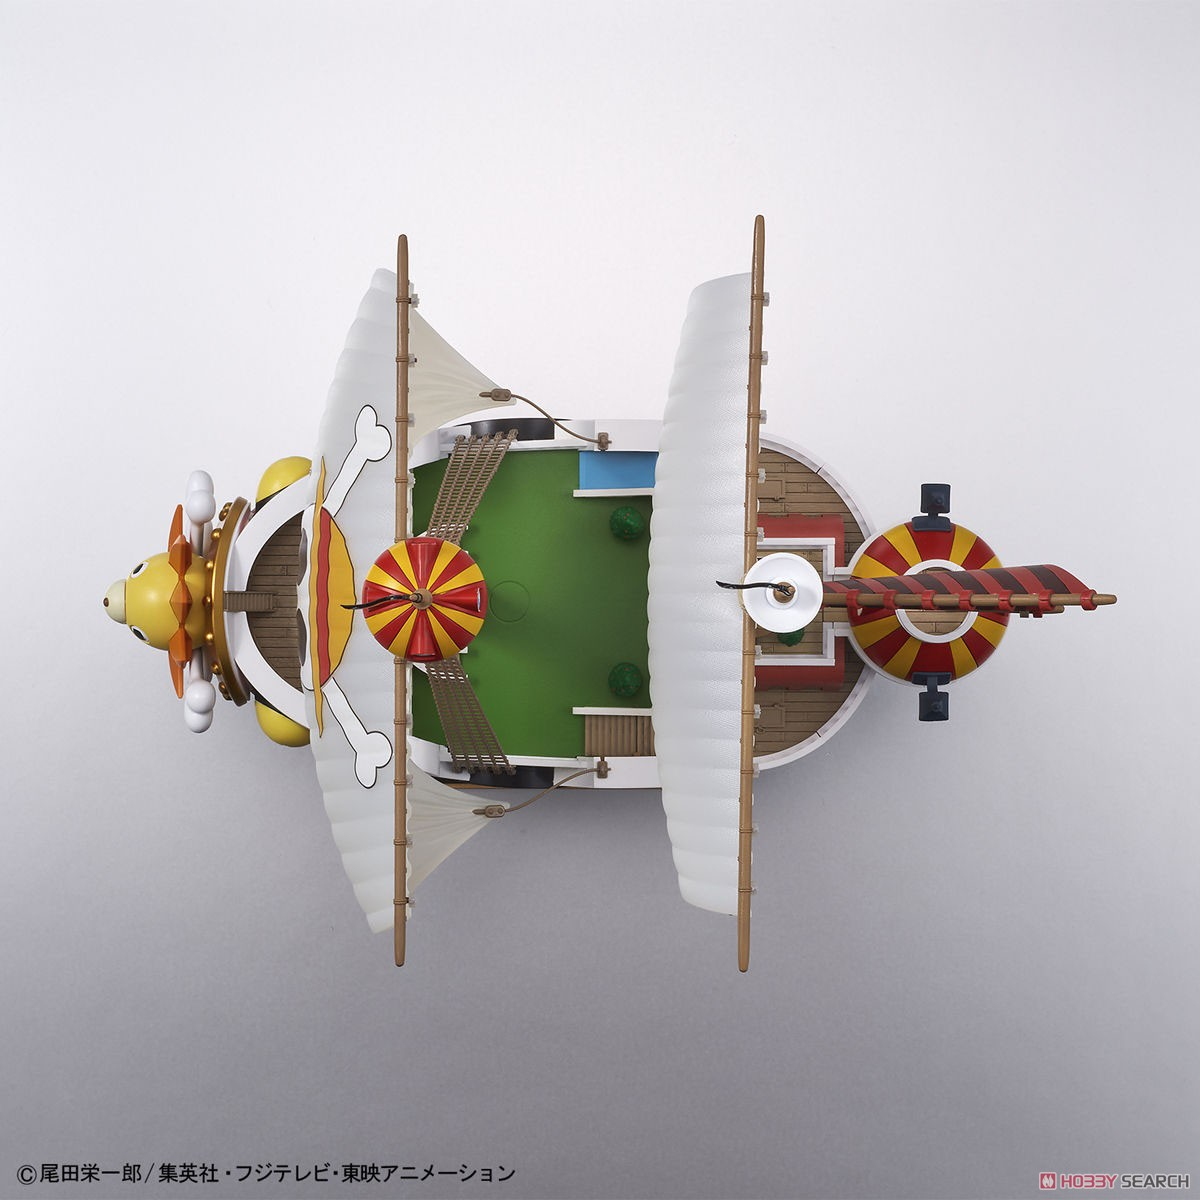 Thousand Sunny Land of Wano Ver. (Plastic model) Item picture3